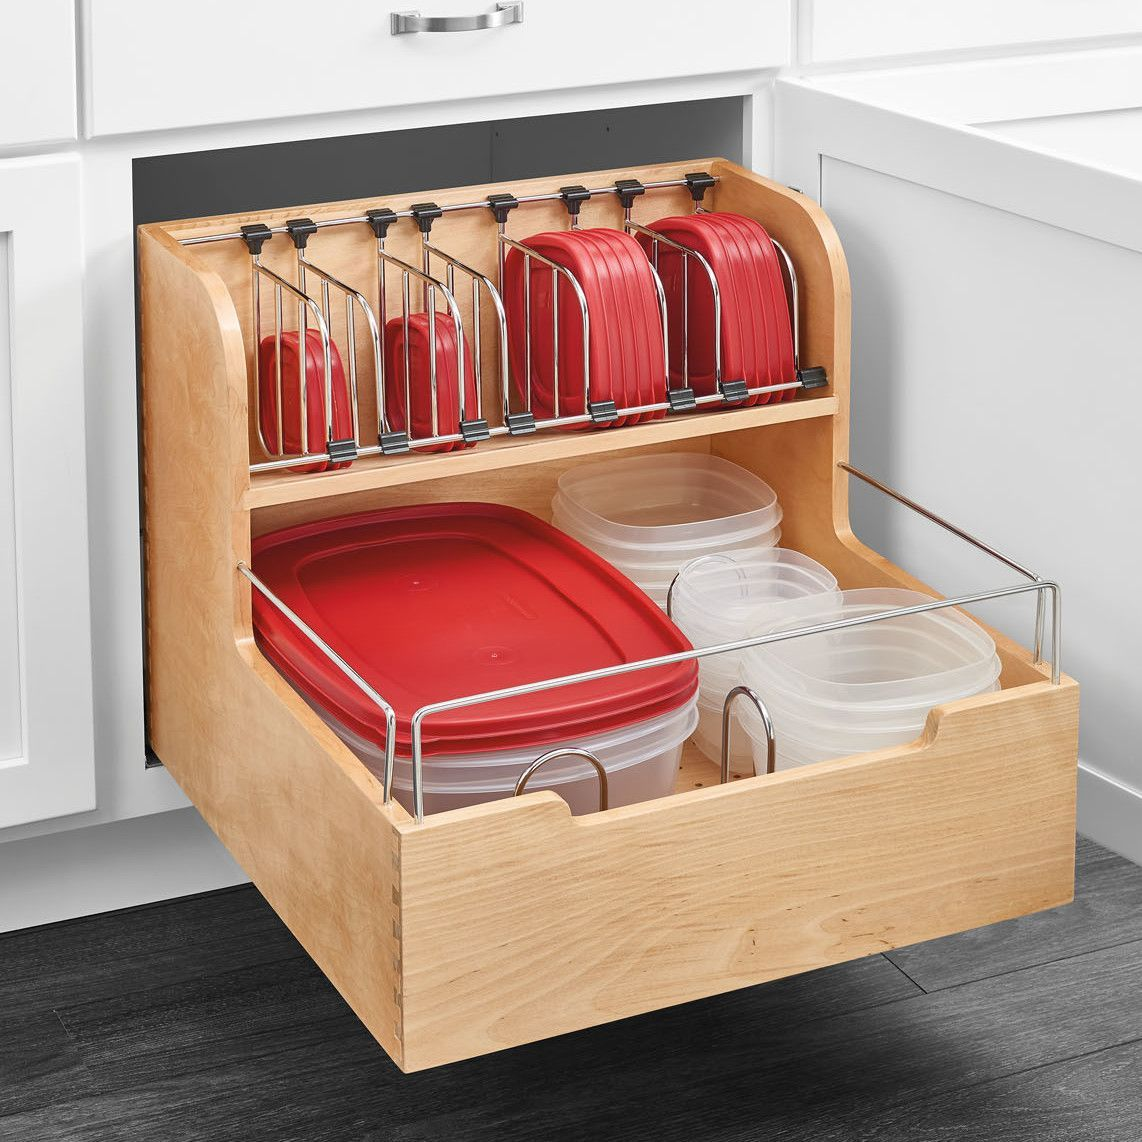 Food Storage Pull Out Drawer restore some sanity with this unique